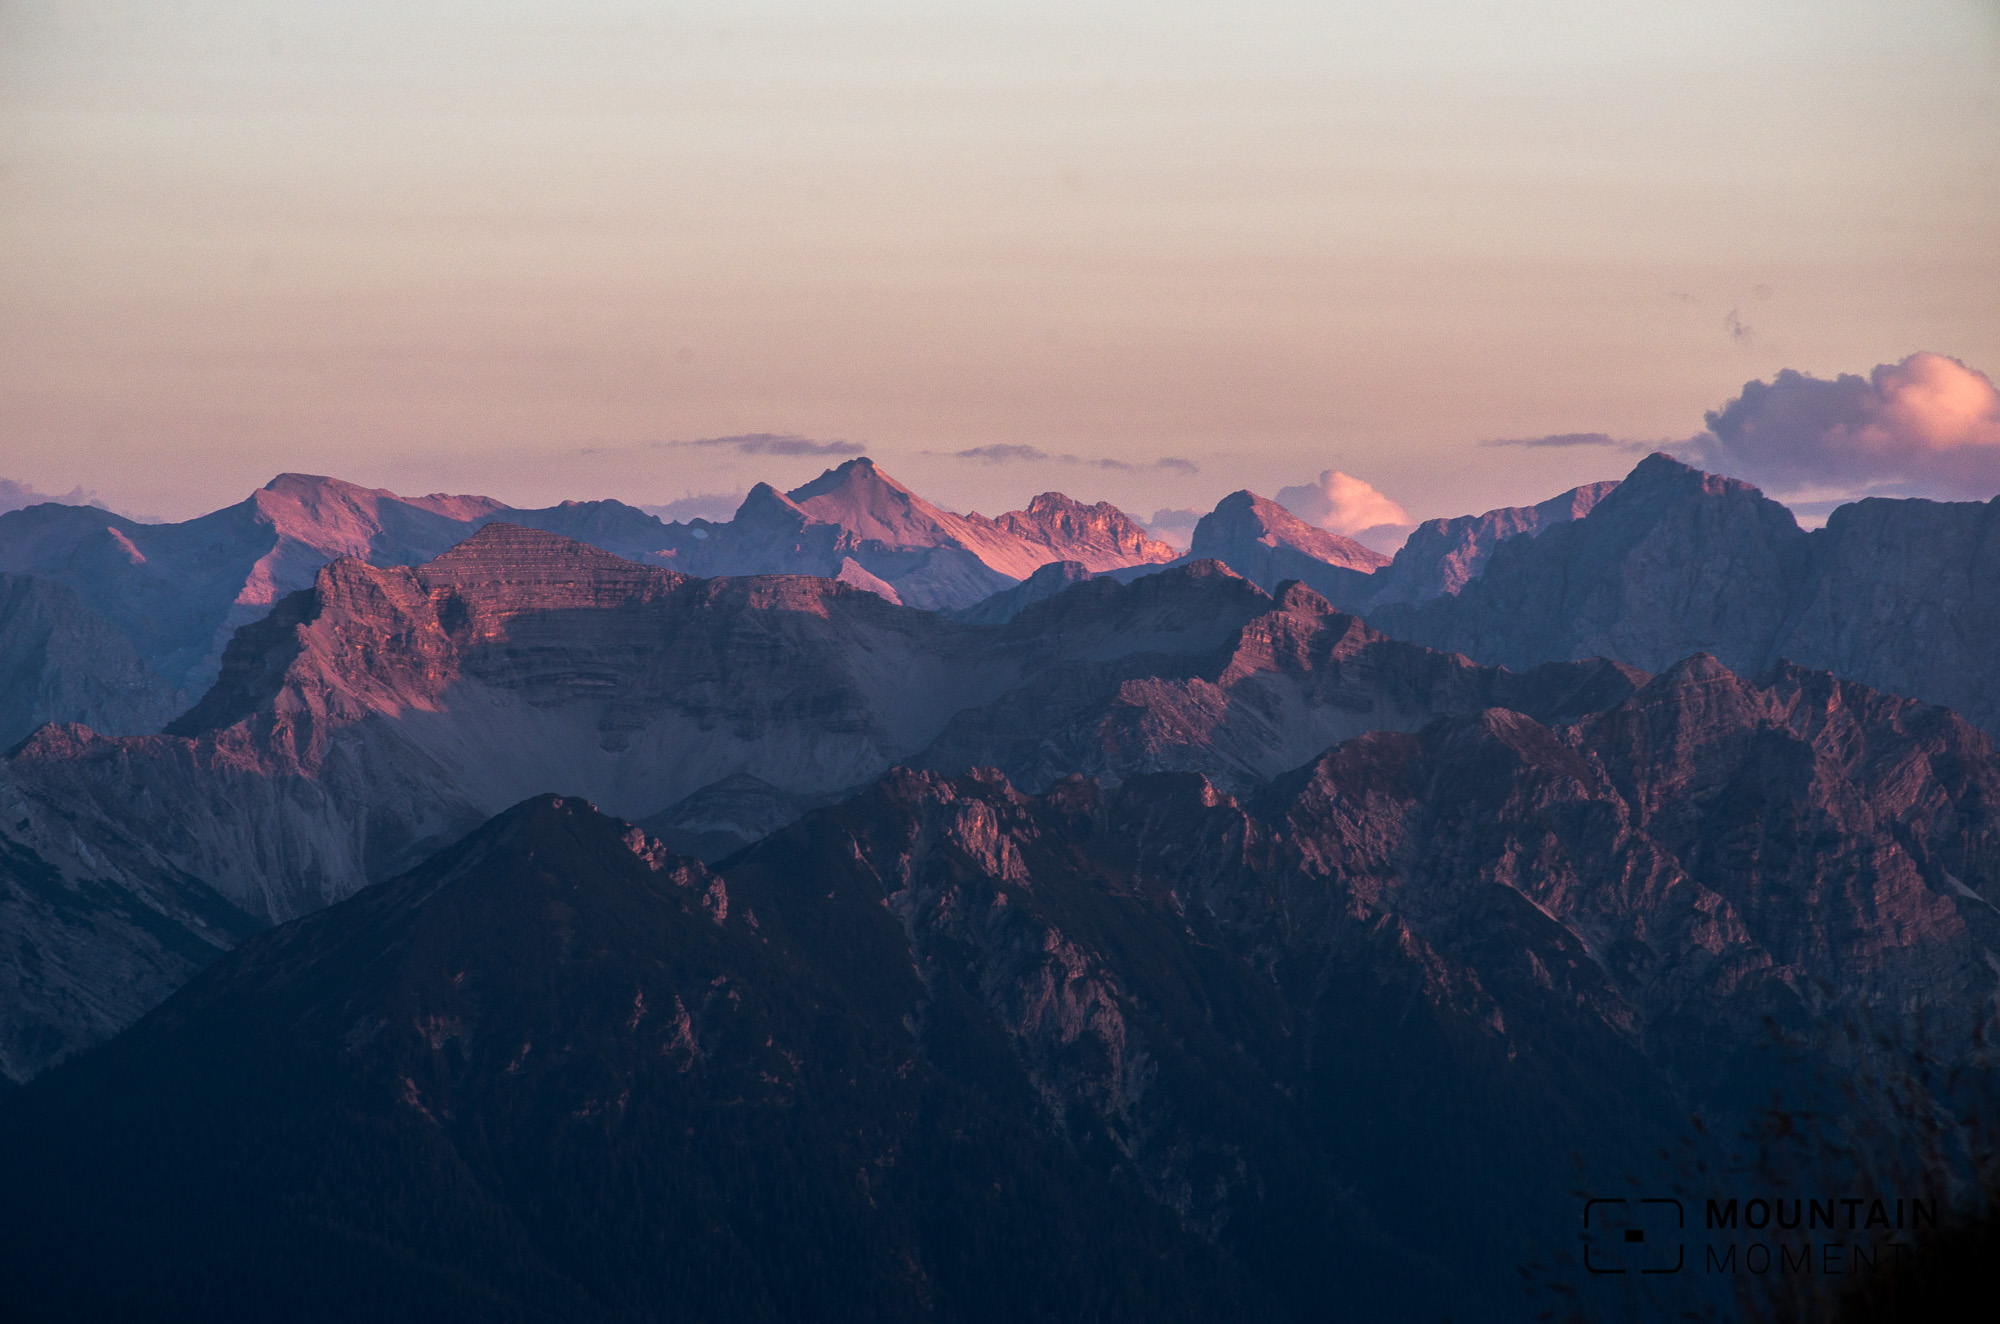 karwendel sonnenuntergang, karwendel sunset, mountains sunset, alpine sunset, bavaria, fotoworkshop münchen